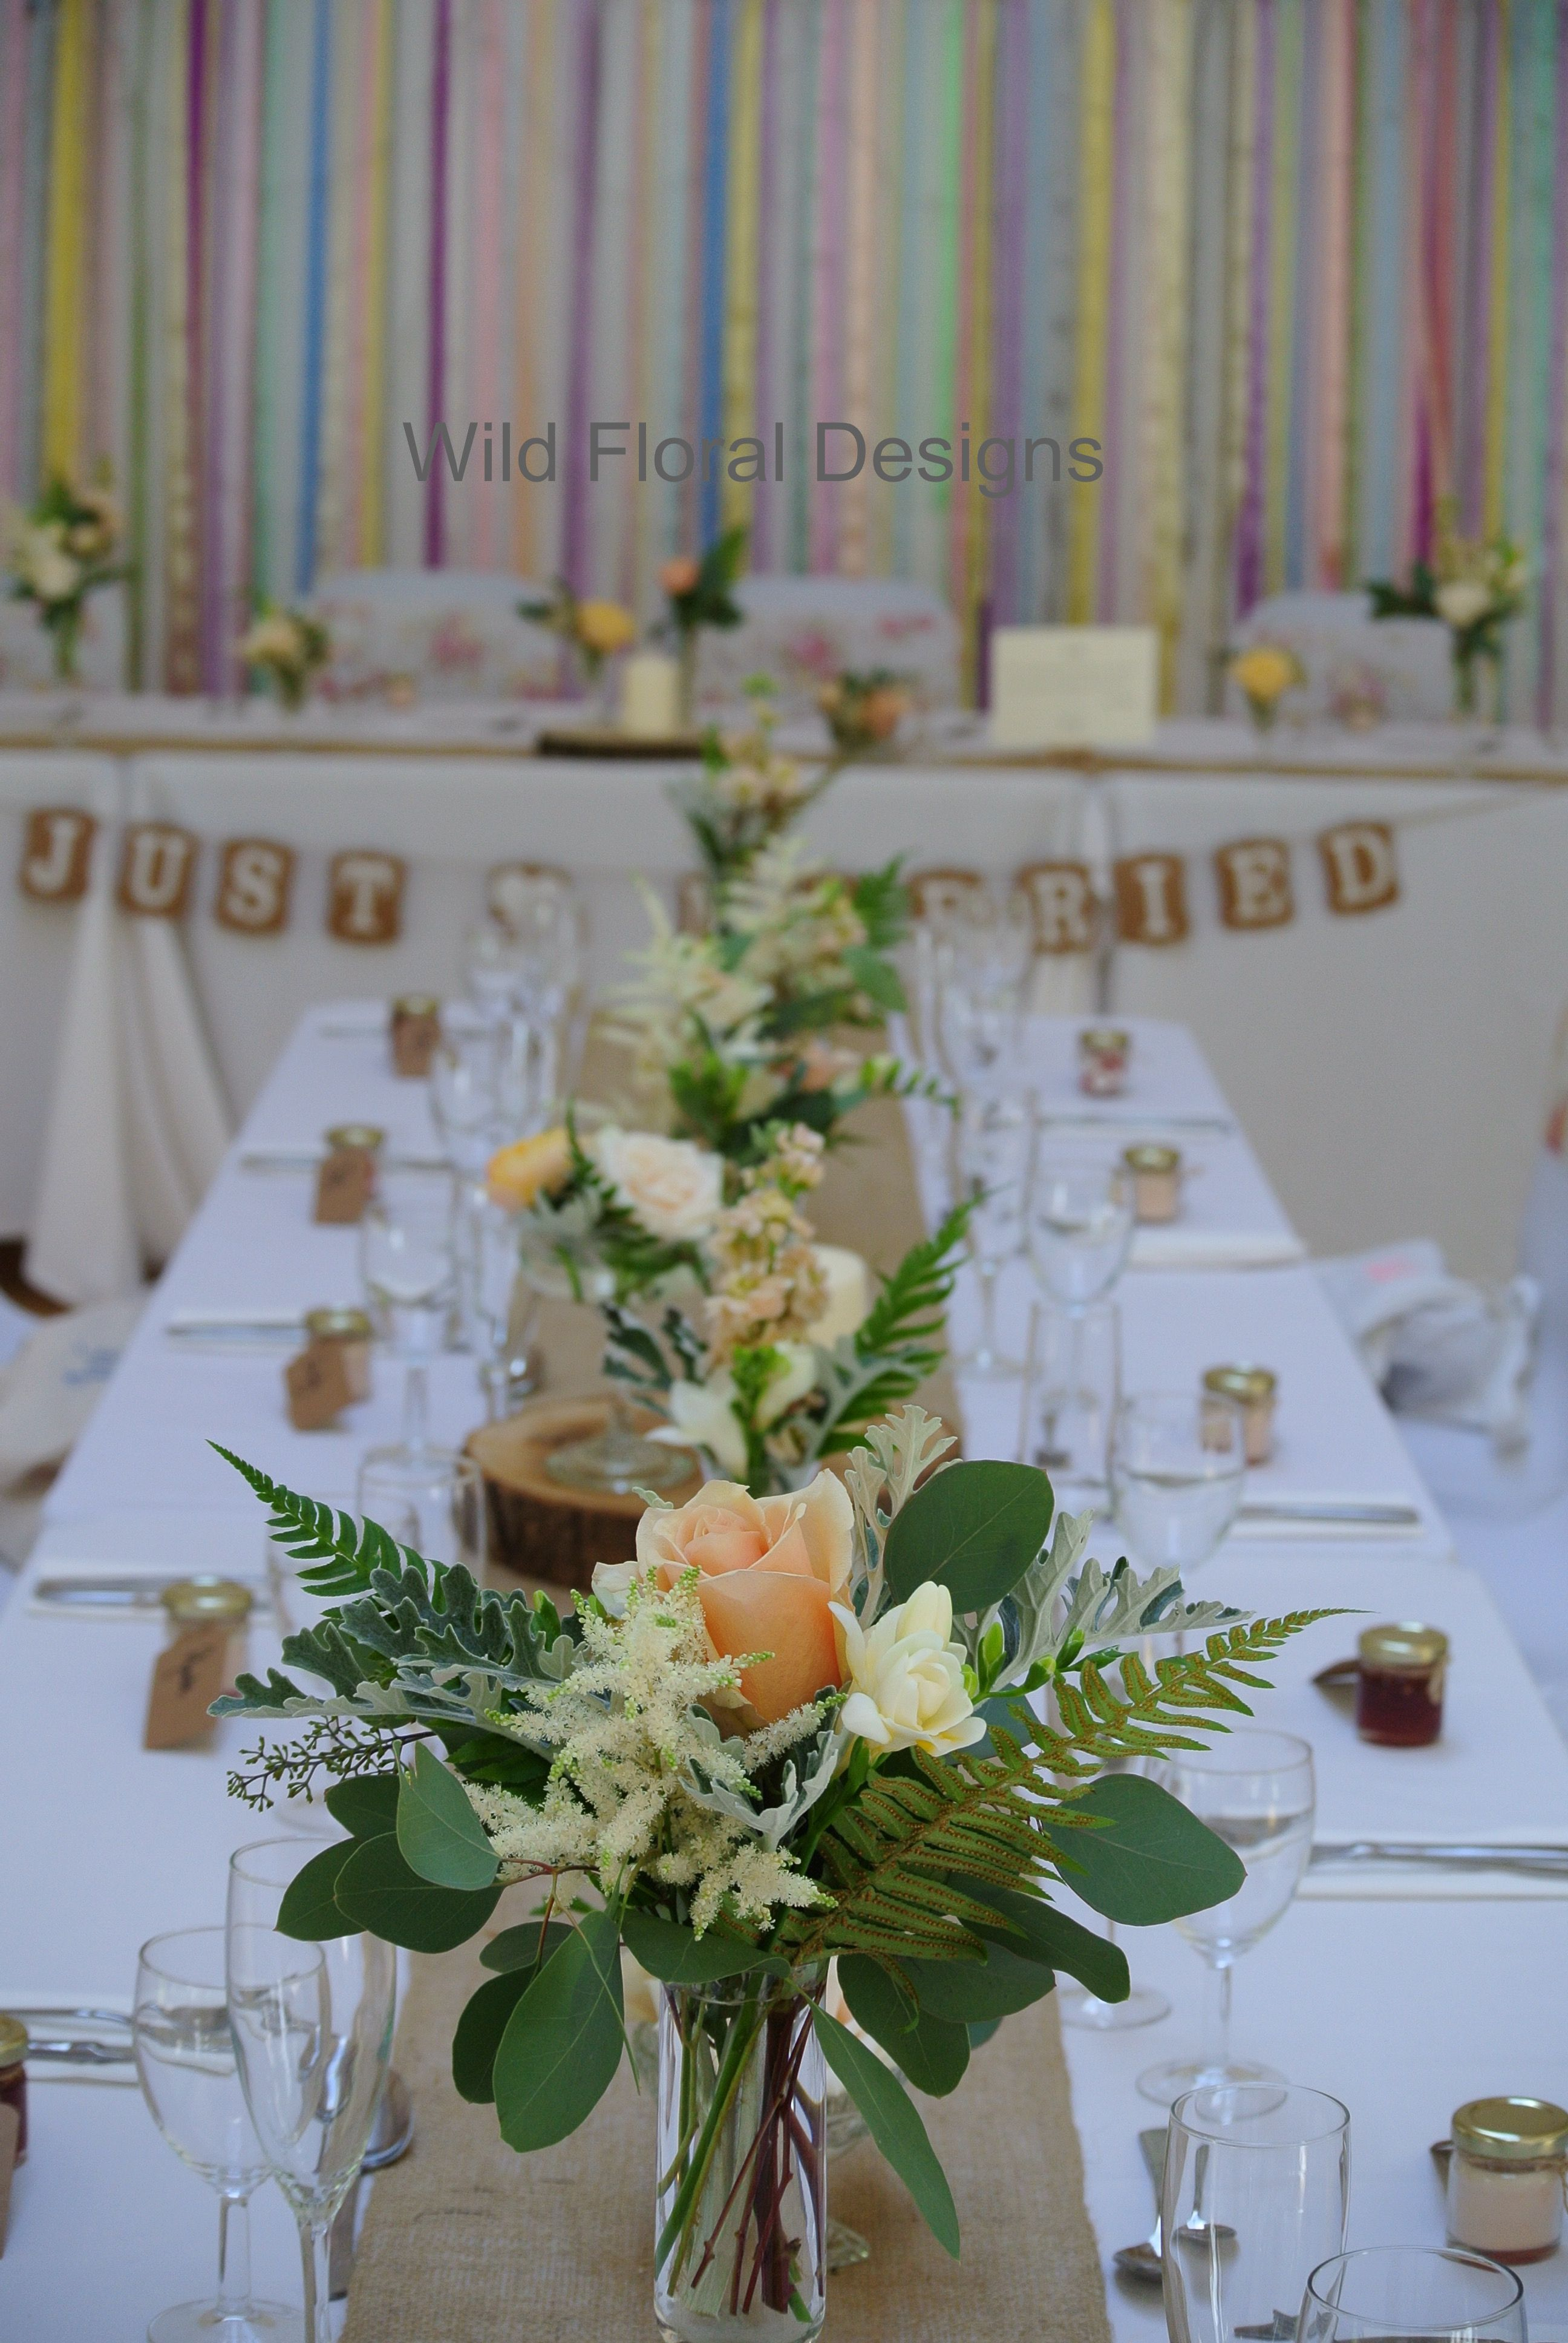 Wedding Chair Covers Devon Hon Volt Chairs Stokeinteignhead Village Hall Sashes Hessian Table Runners And Floral Designs Supplied By Wild